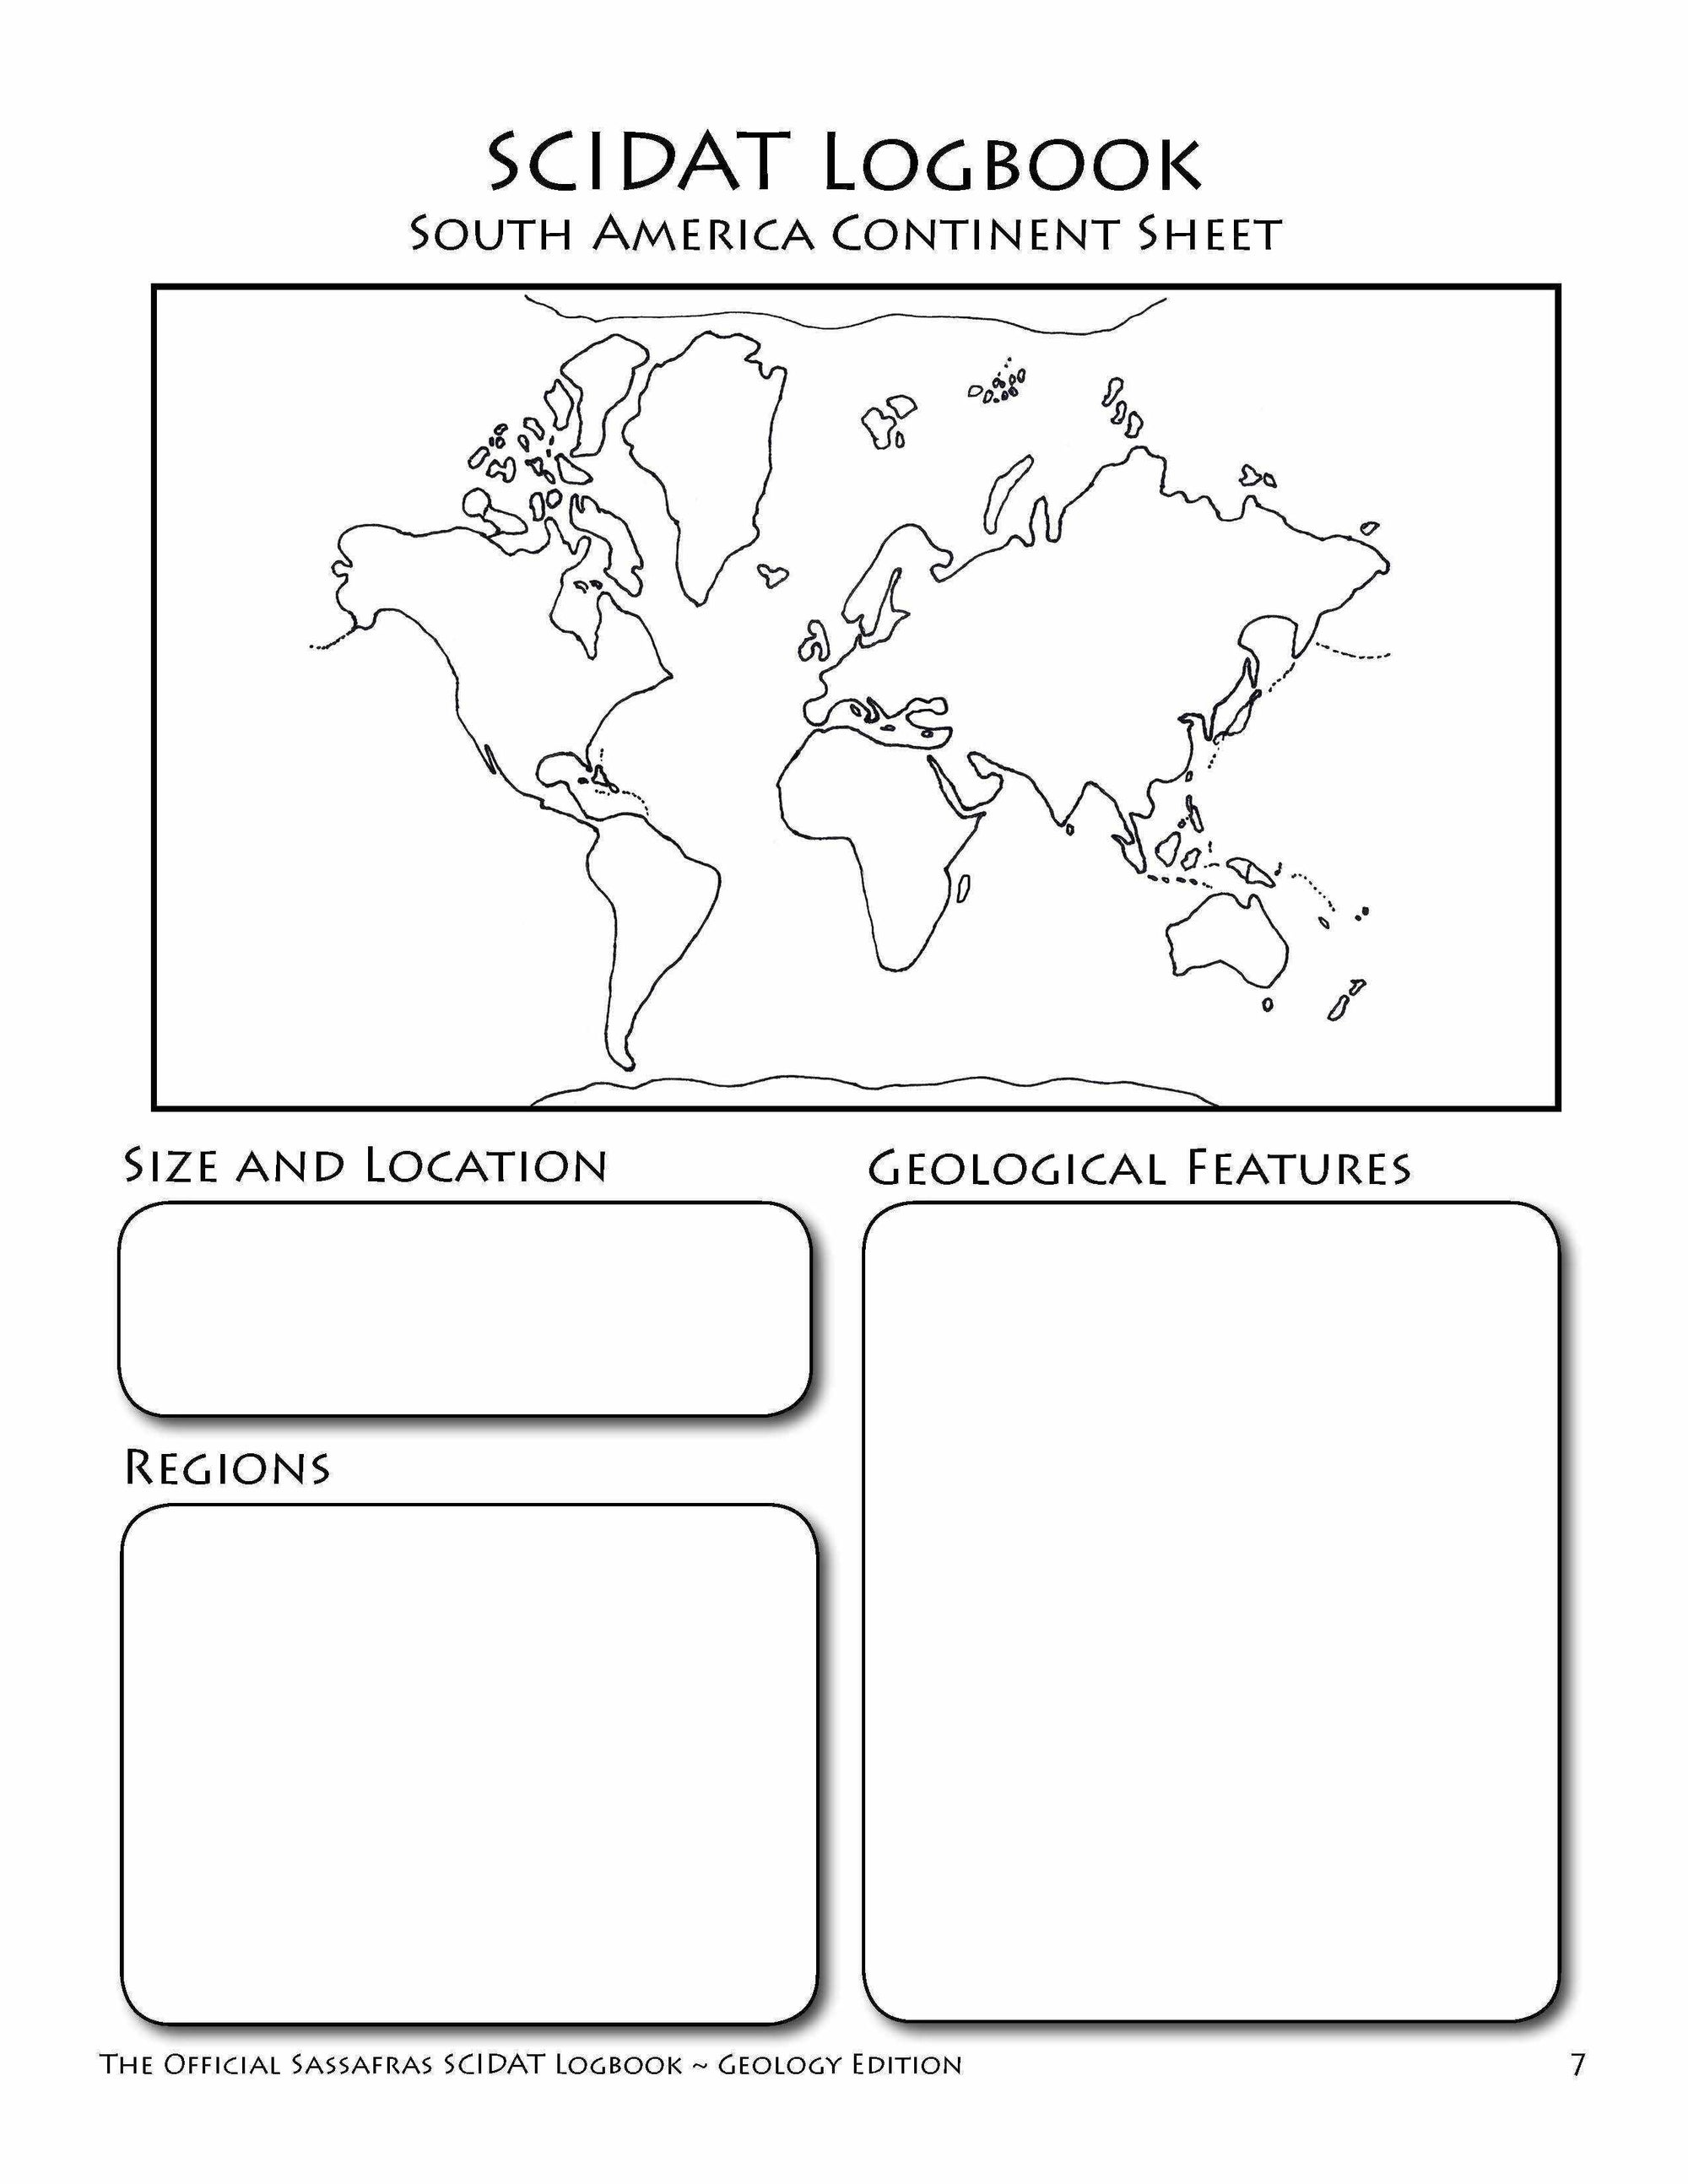 The Official Sassafras SCIDAT Logbook: Geology Edition